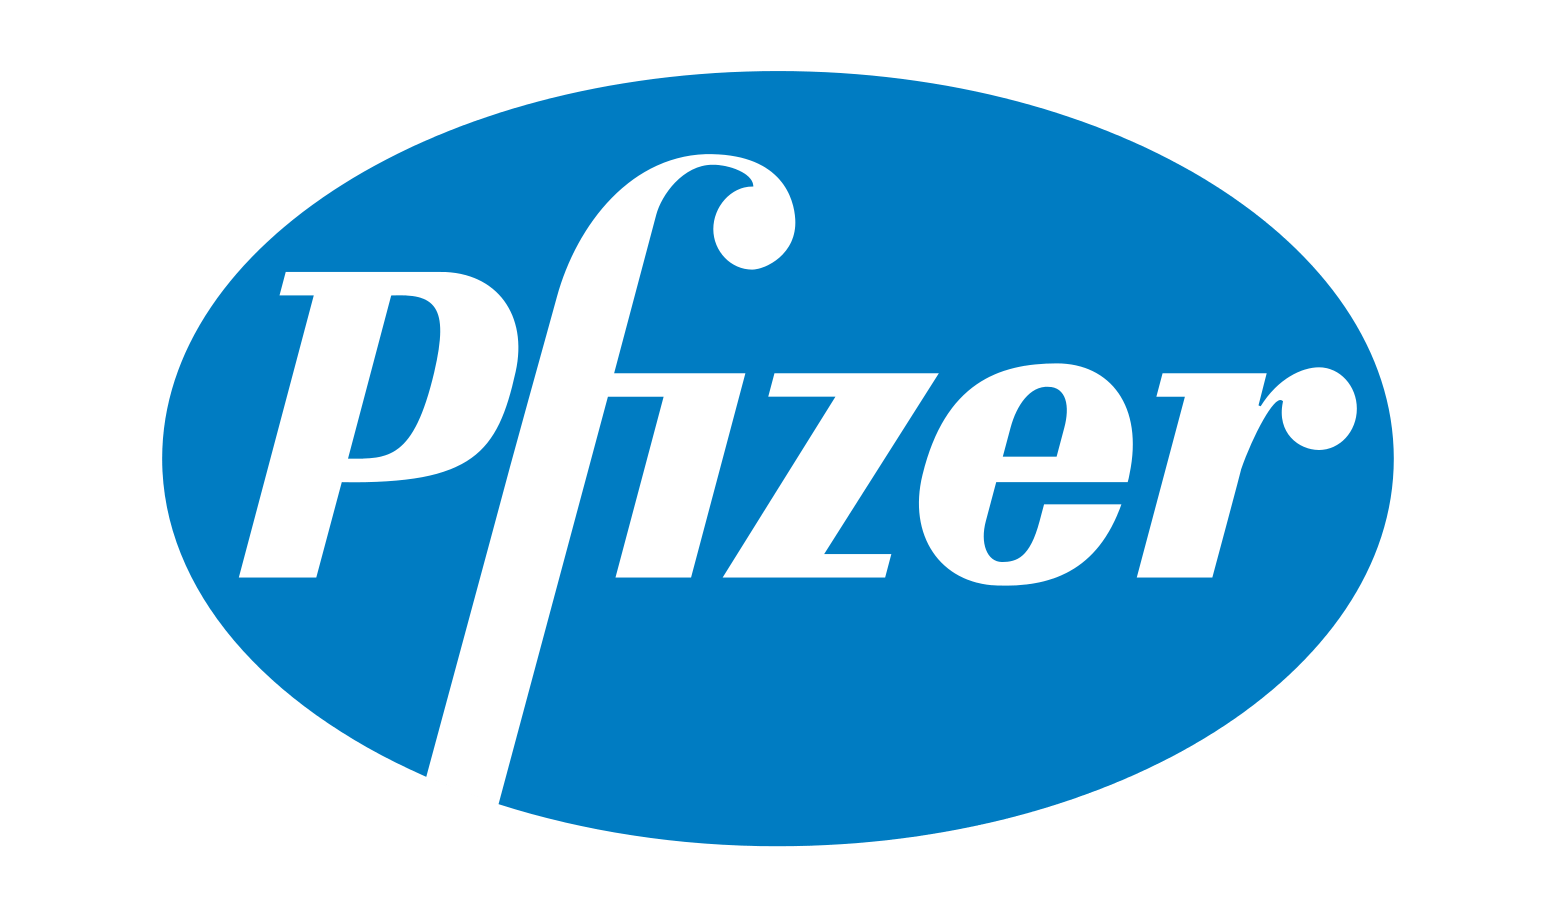 Pfizer - How we can help with Annex VI